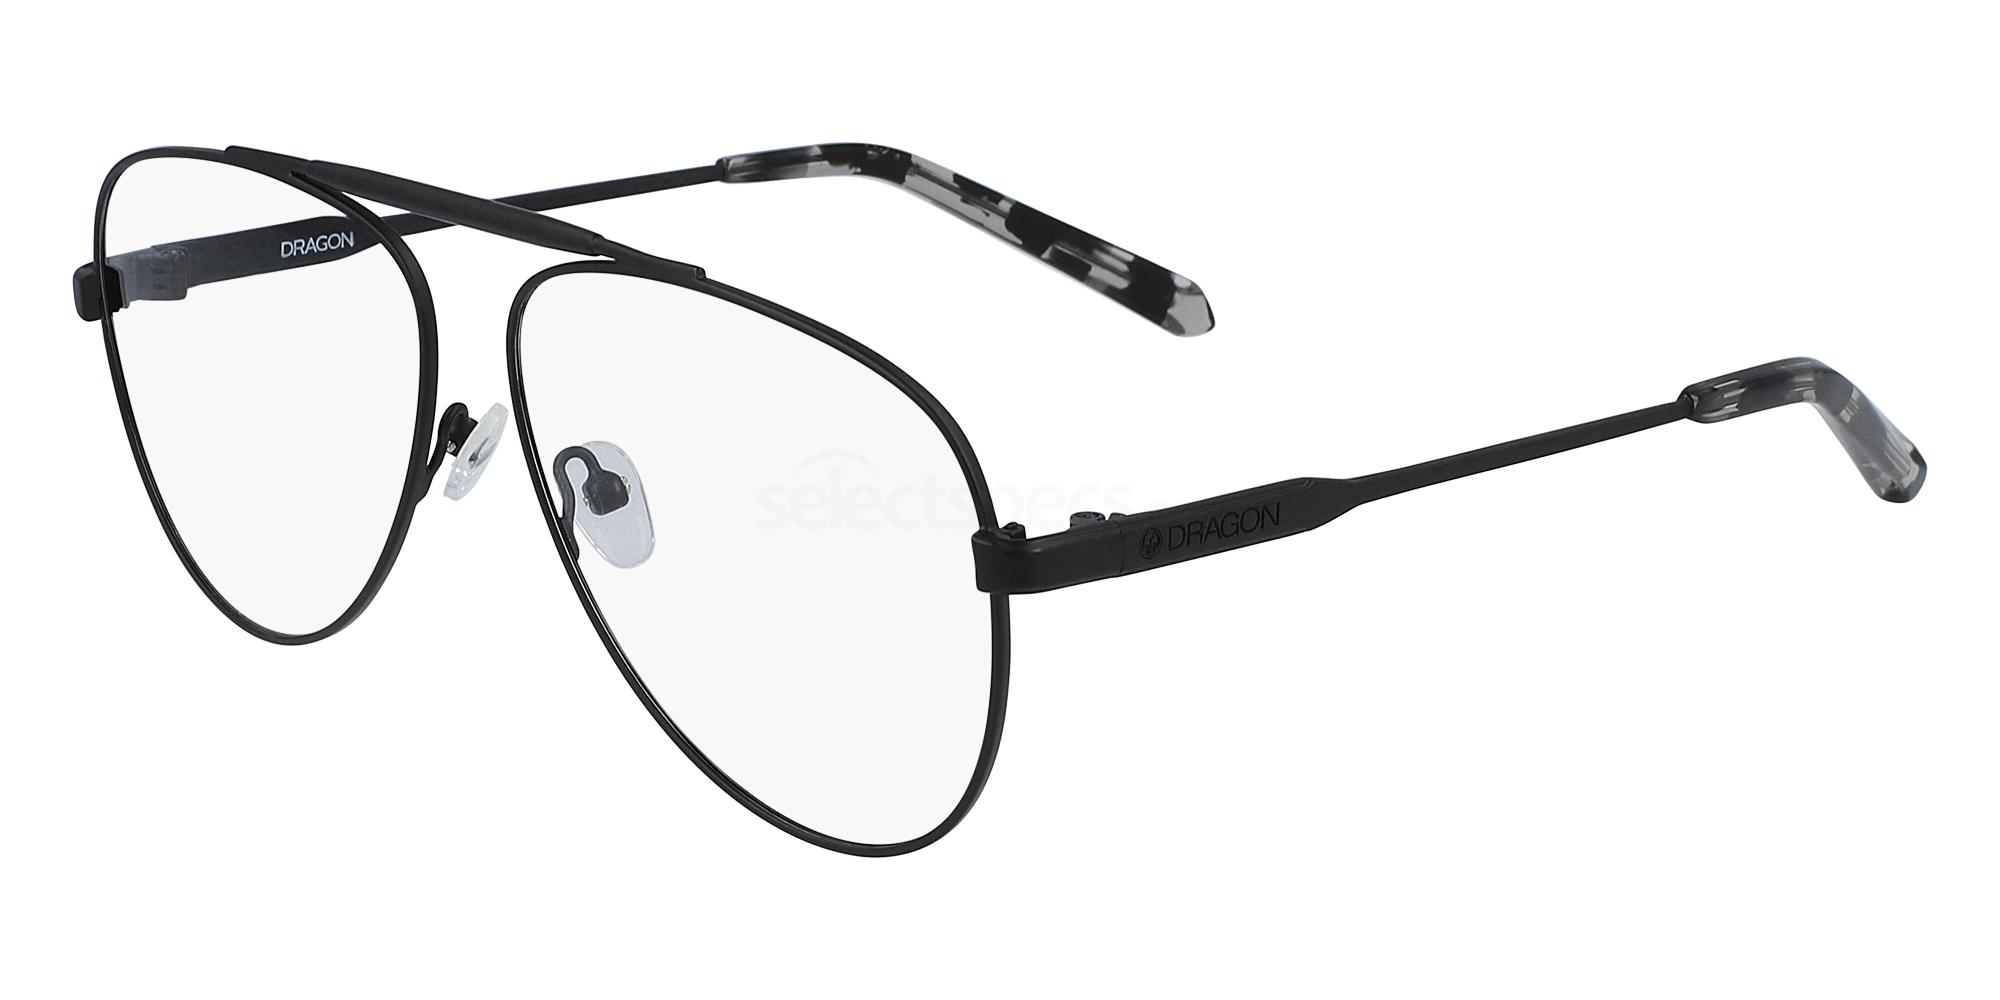 002 DR197 DEE Glasses, Dragon